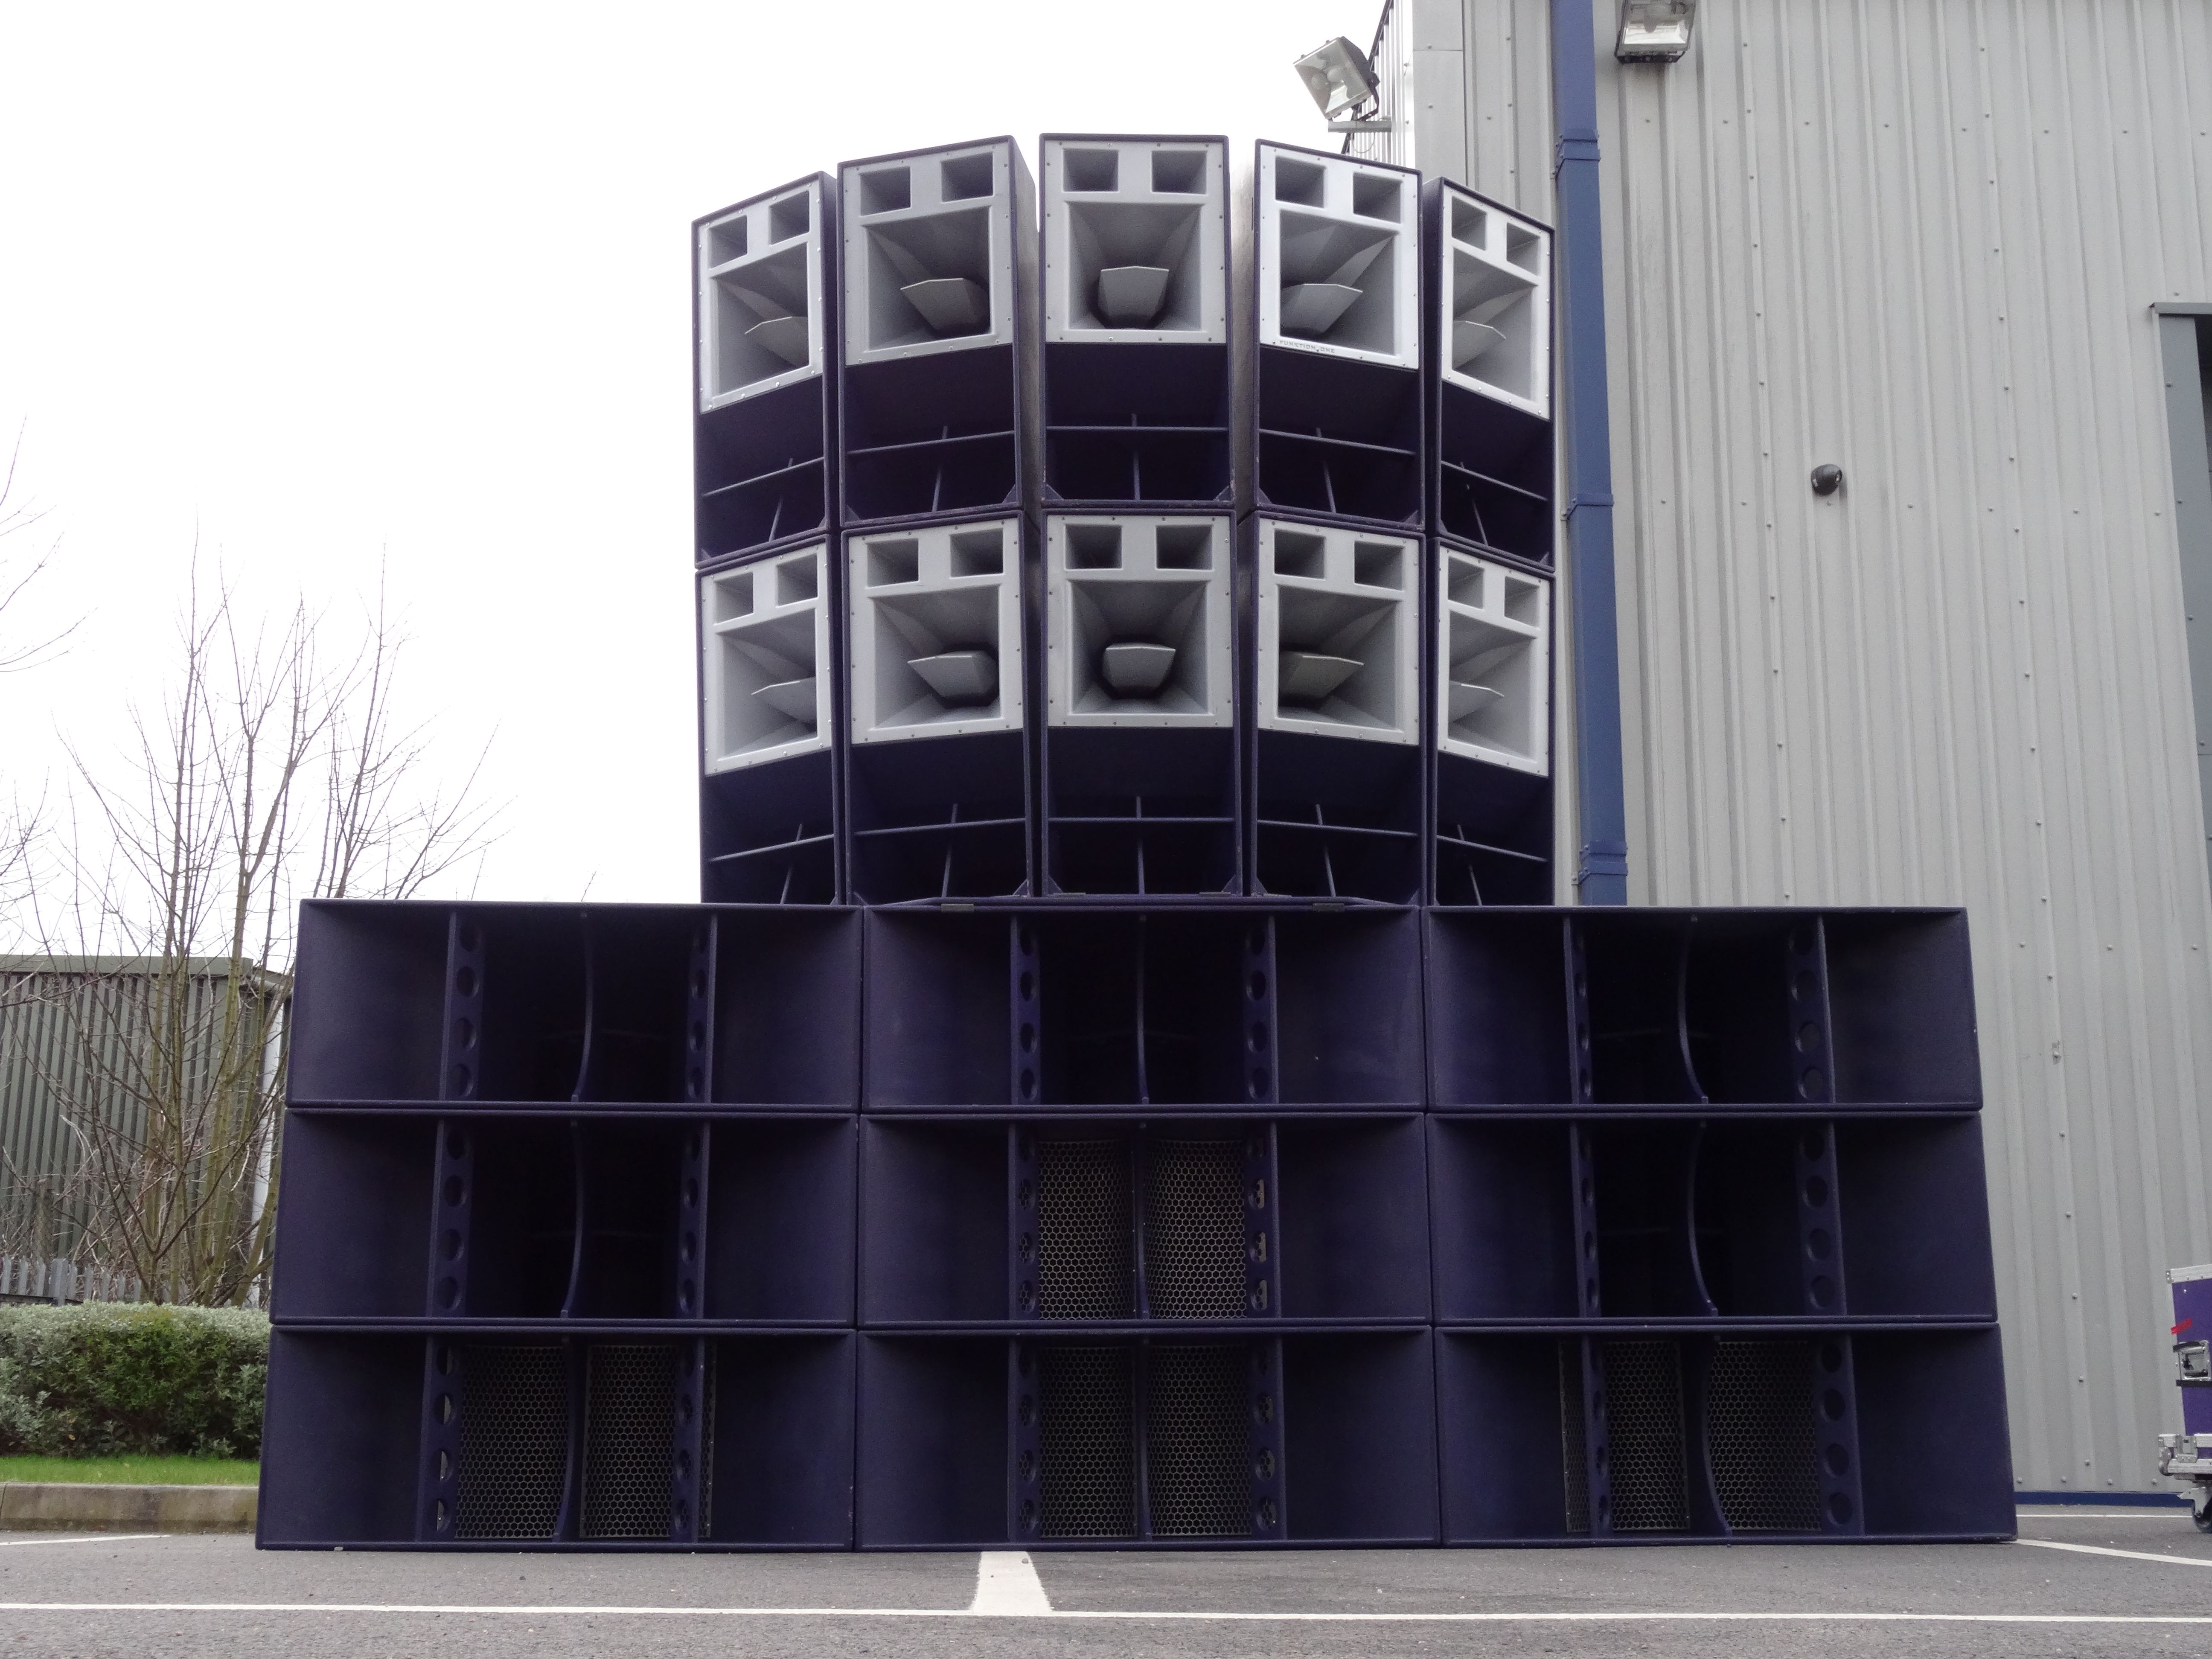 Pin by Jay Meletiche on Sound Systems in 2019 | Stereo